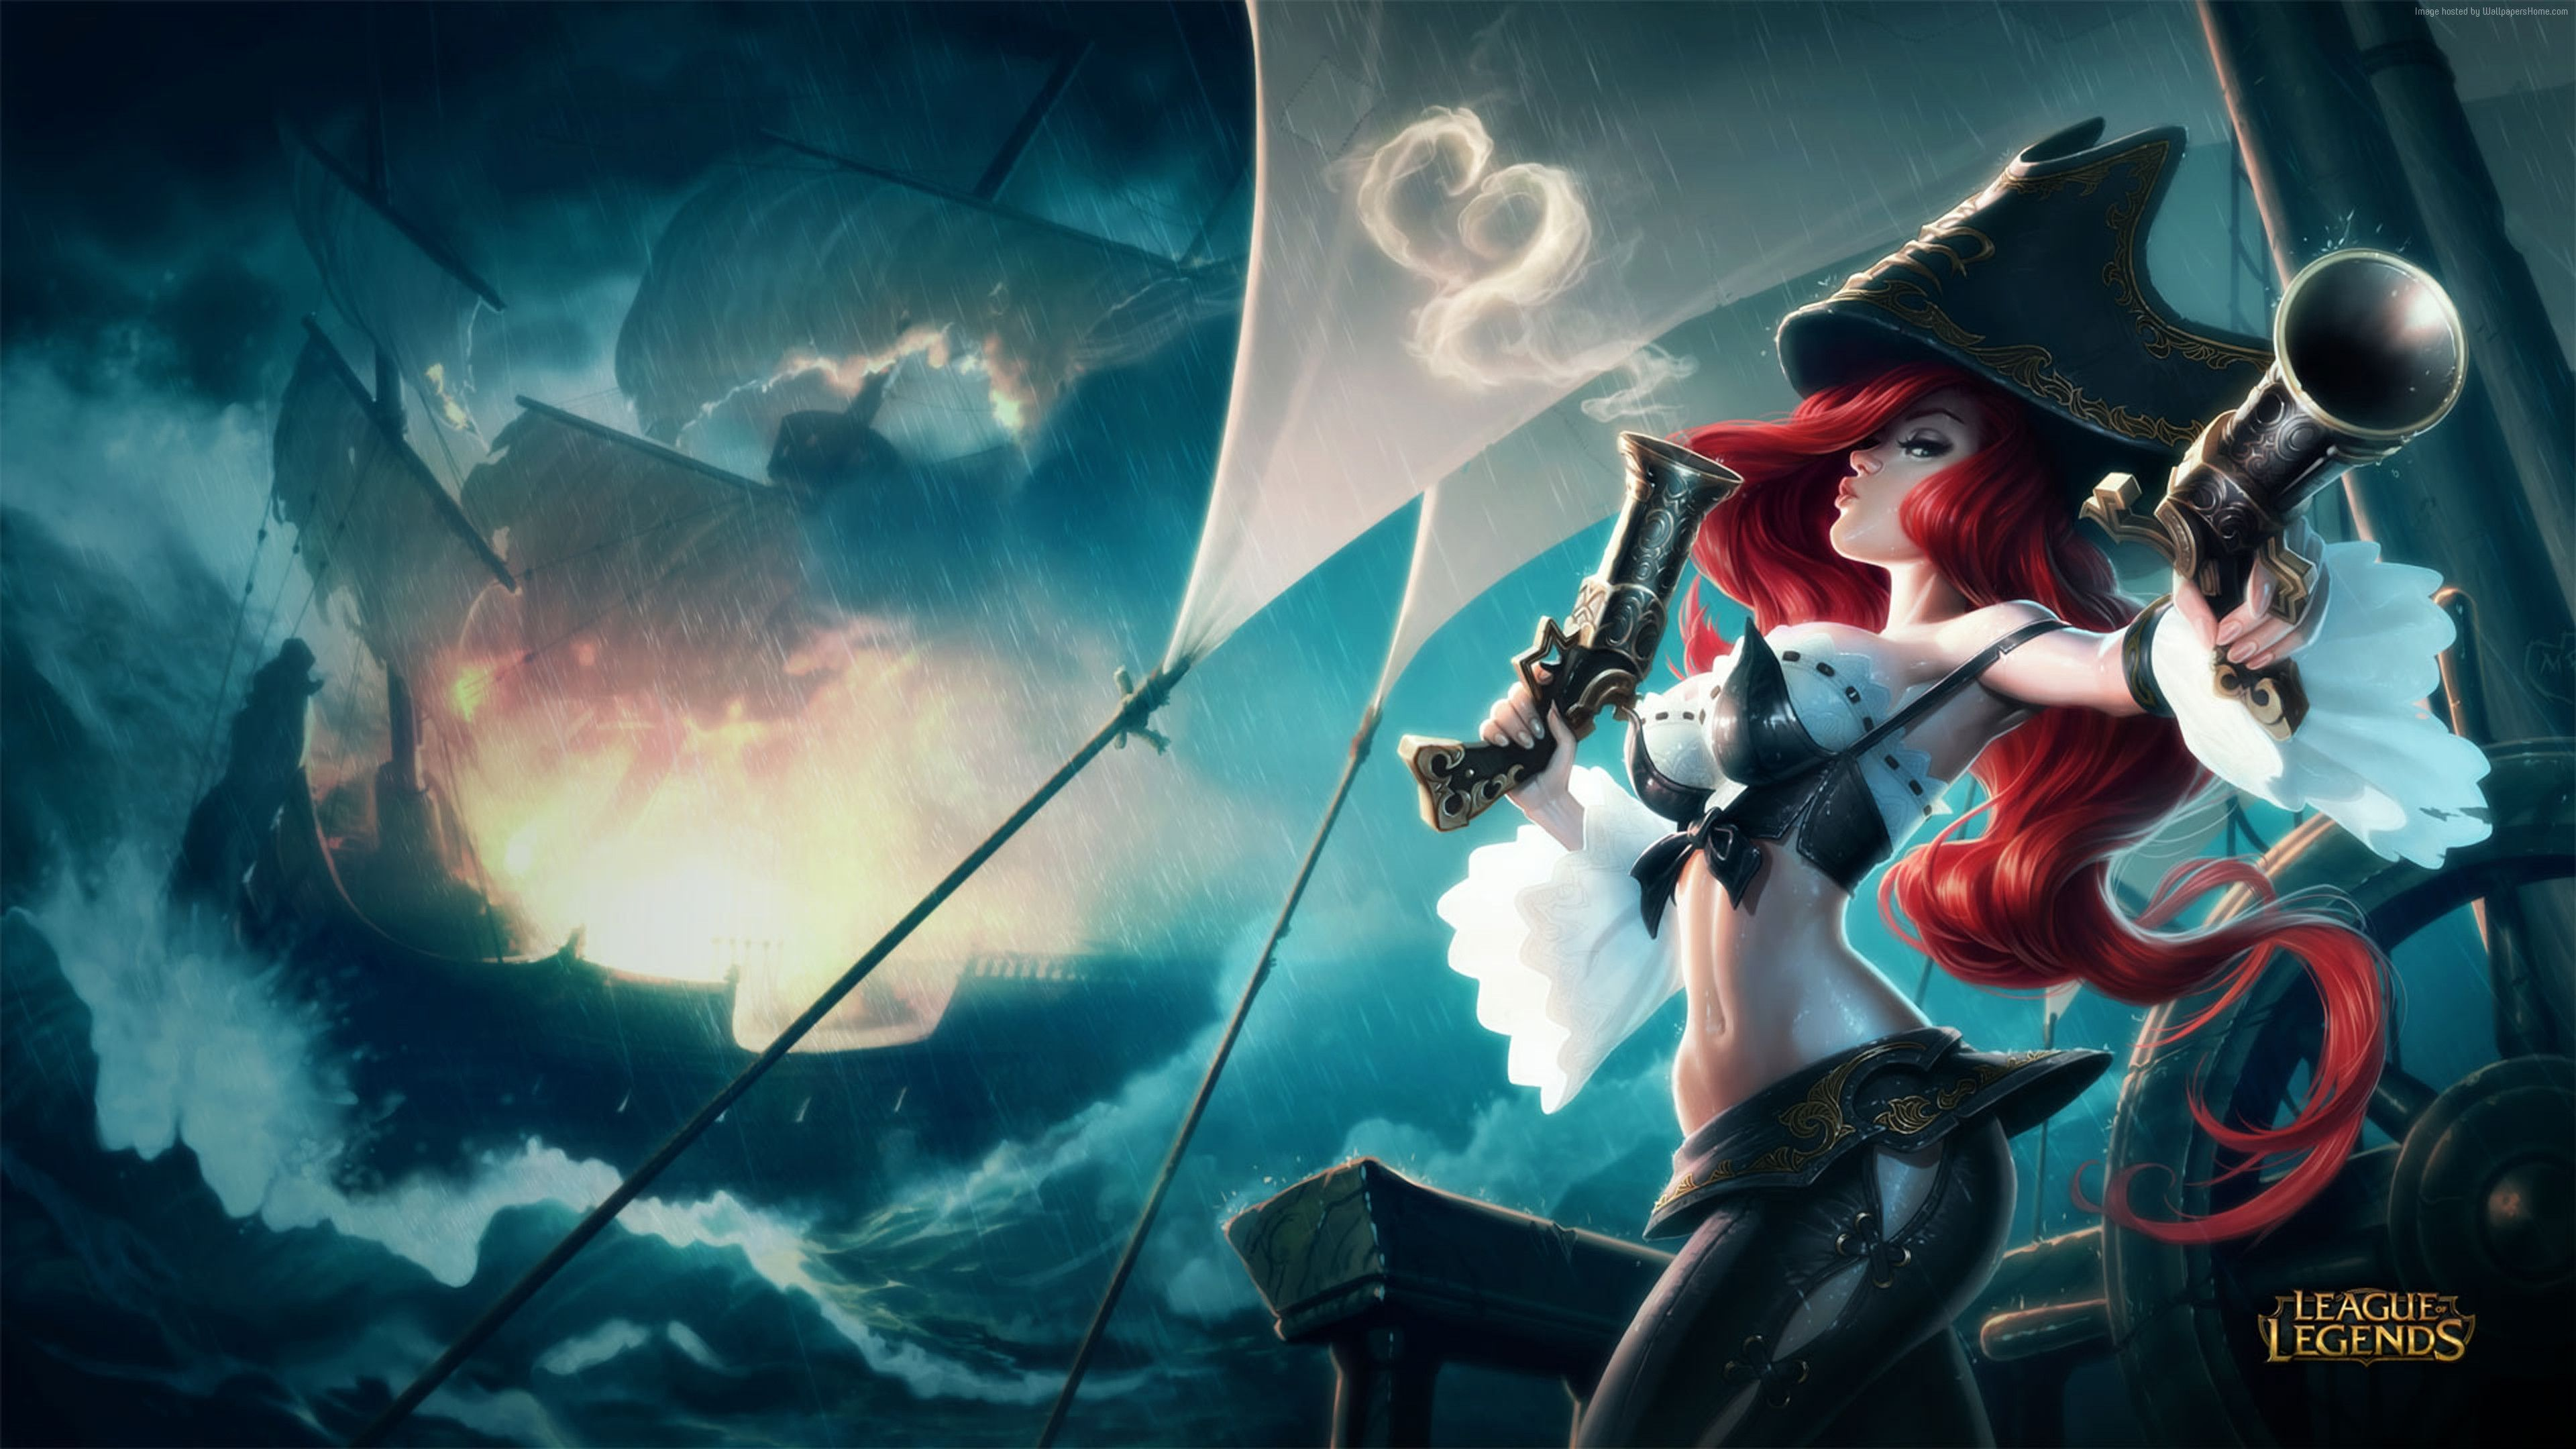 Desktophdwallpaper Org Miss Fortune League Of Legends Characters League Of Legends Game